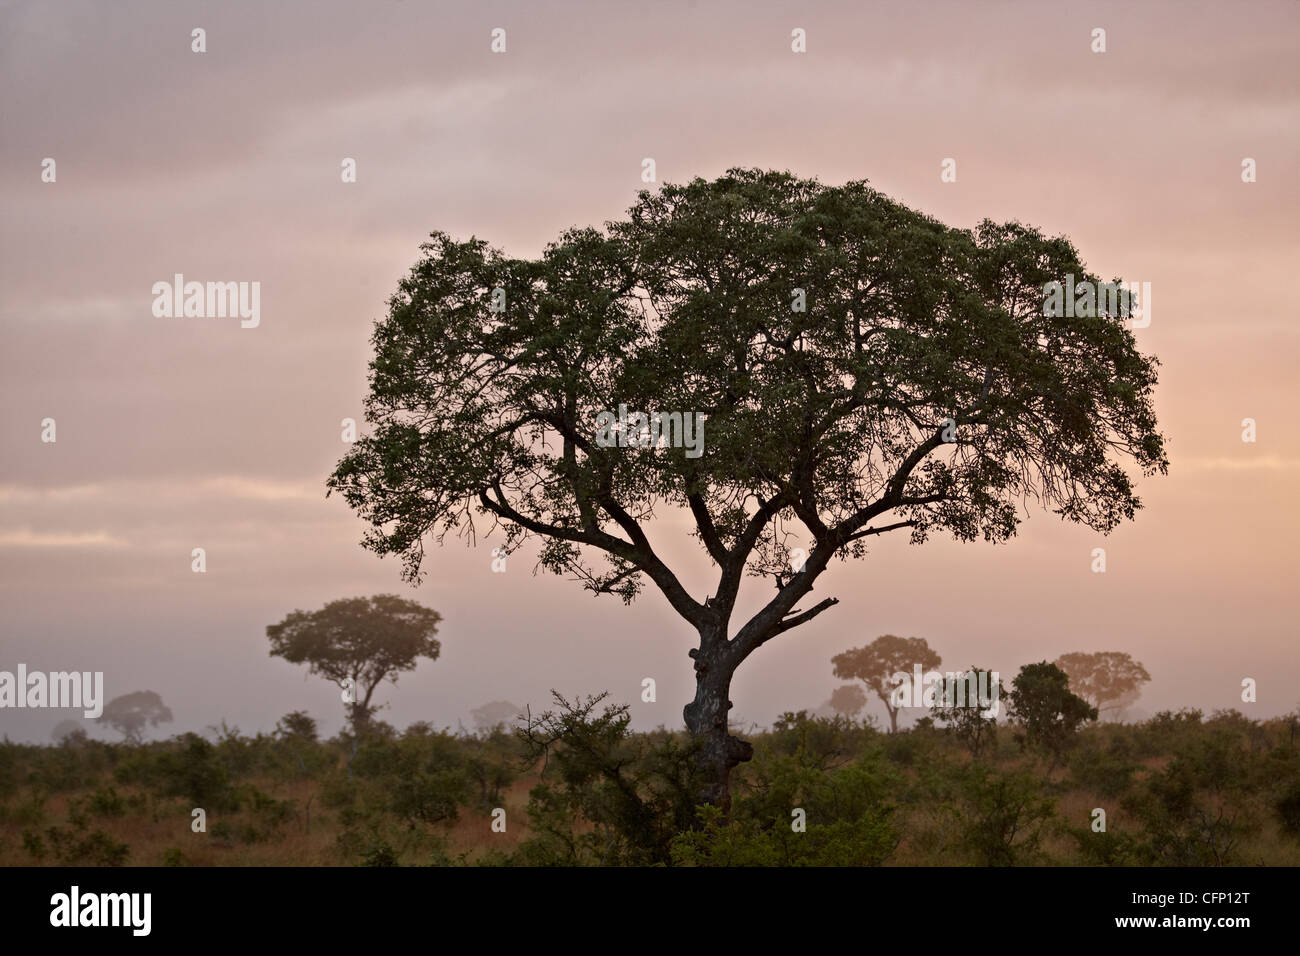 Trees in fog at dawn, Kruger National Park, South Africa, Africa - Stock Image